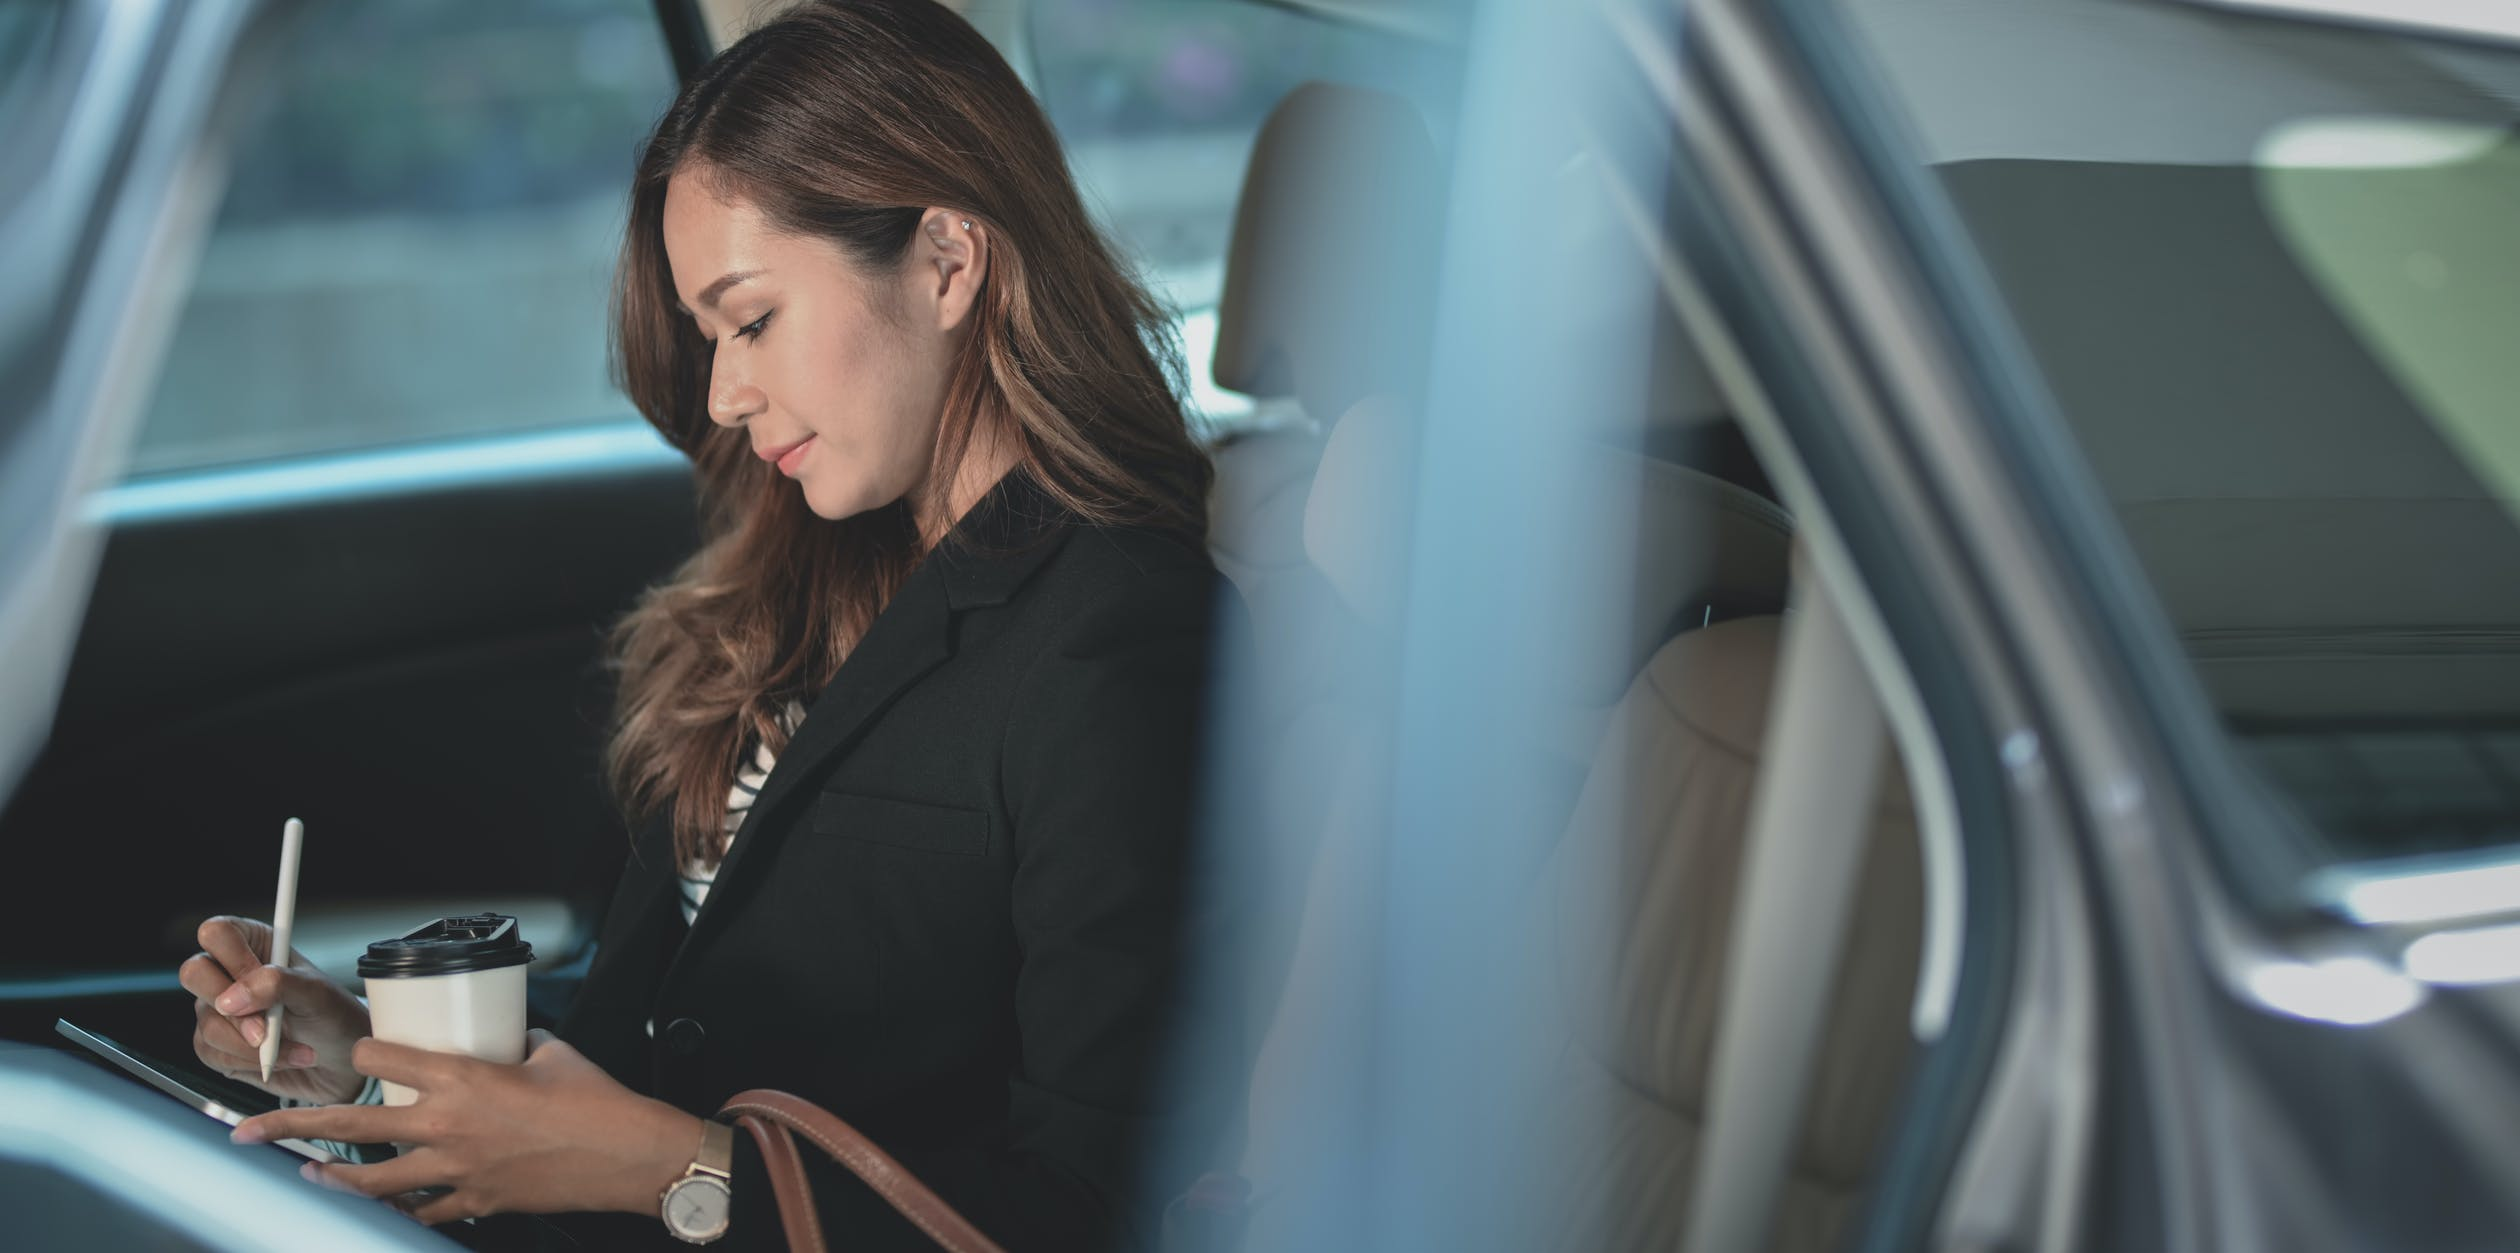 business woman working in car